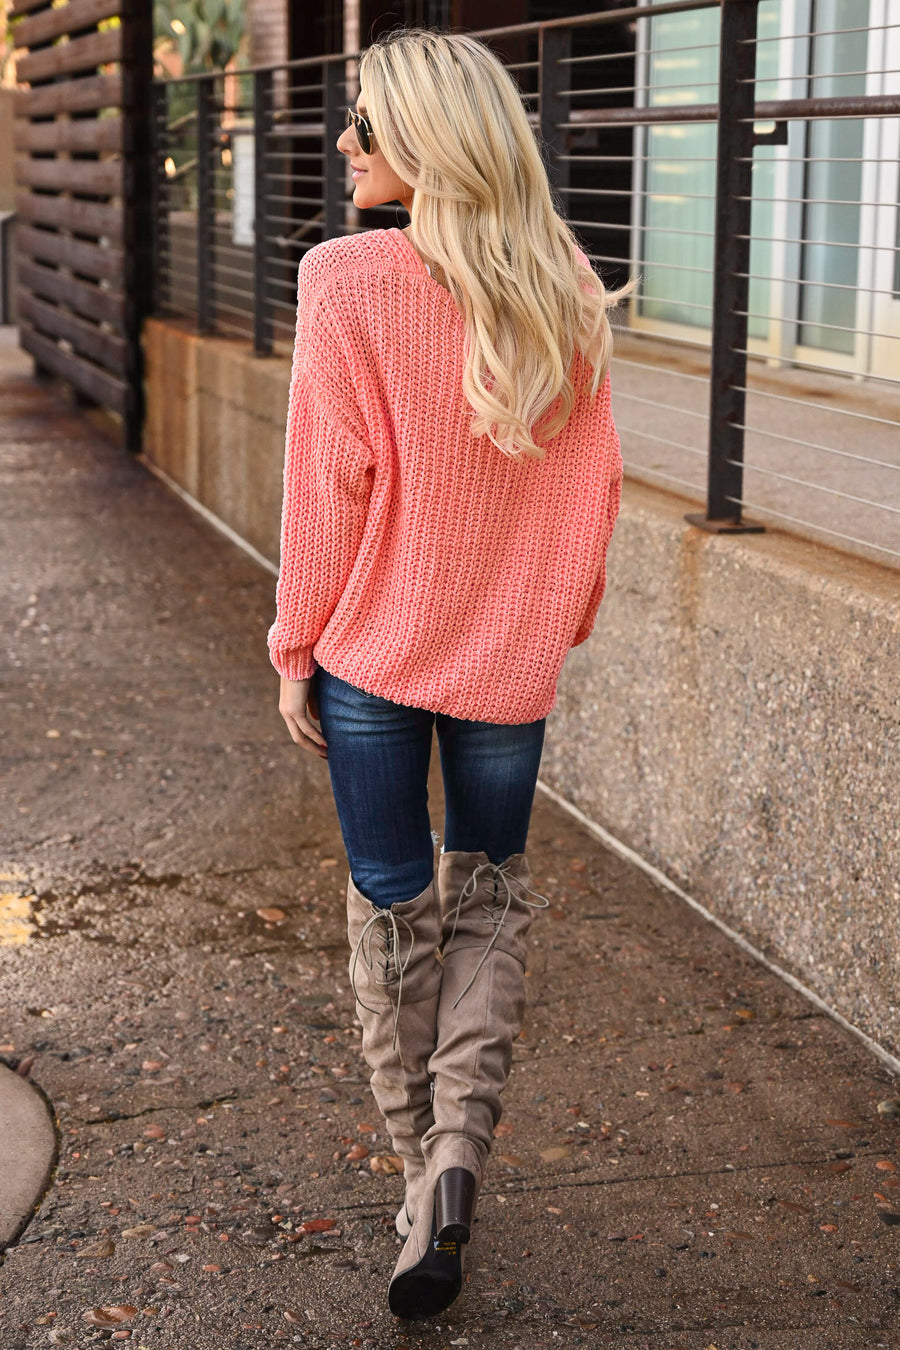 Brighter Days Sweater - Neon Coral women's off the shoulder knit sweater, Closet Candy Boutique 1